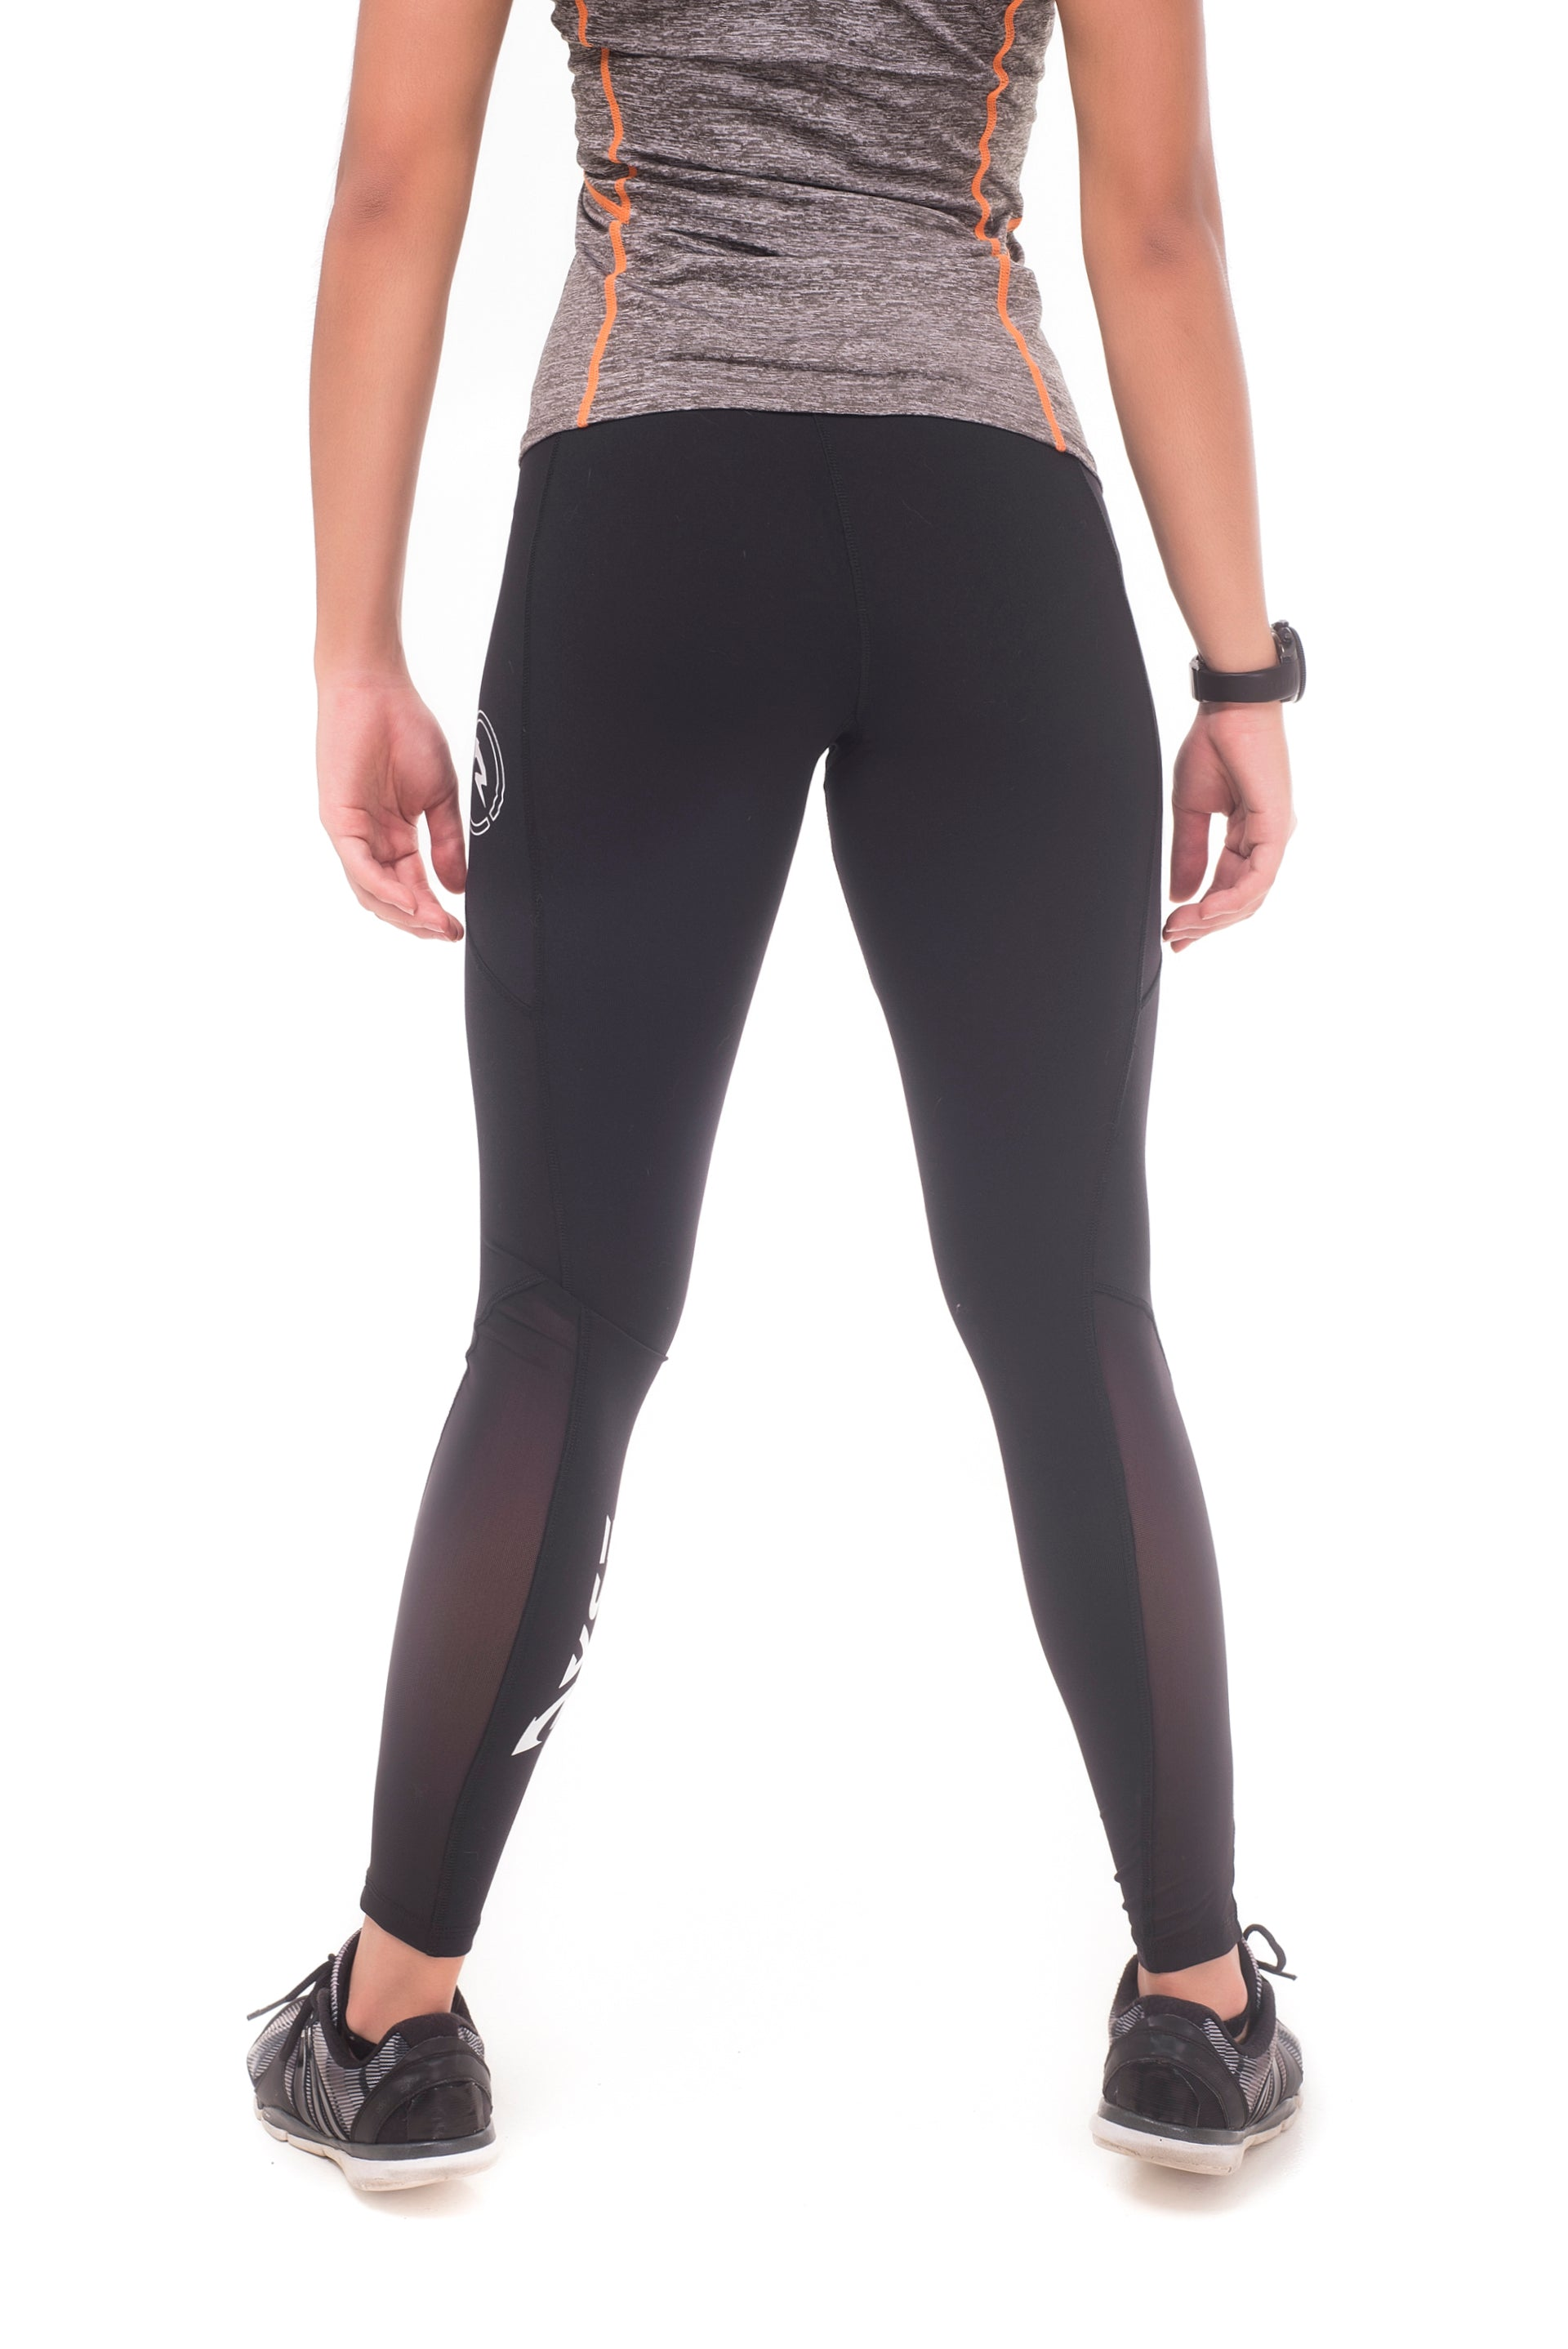 Comfy Pro Ventilator Tight